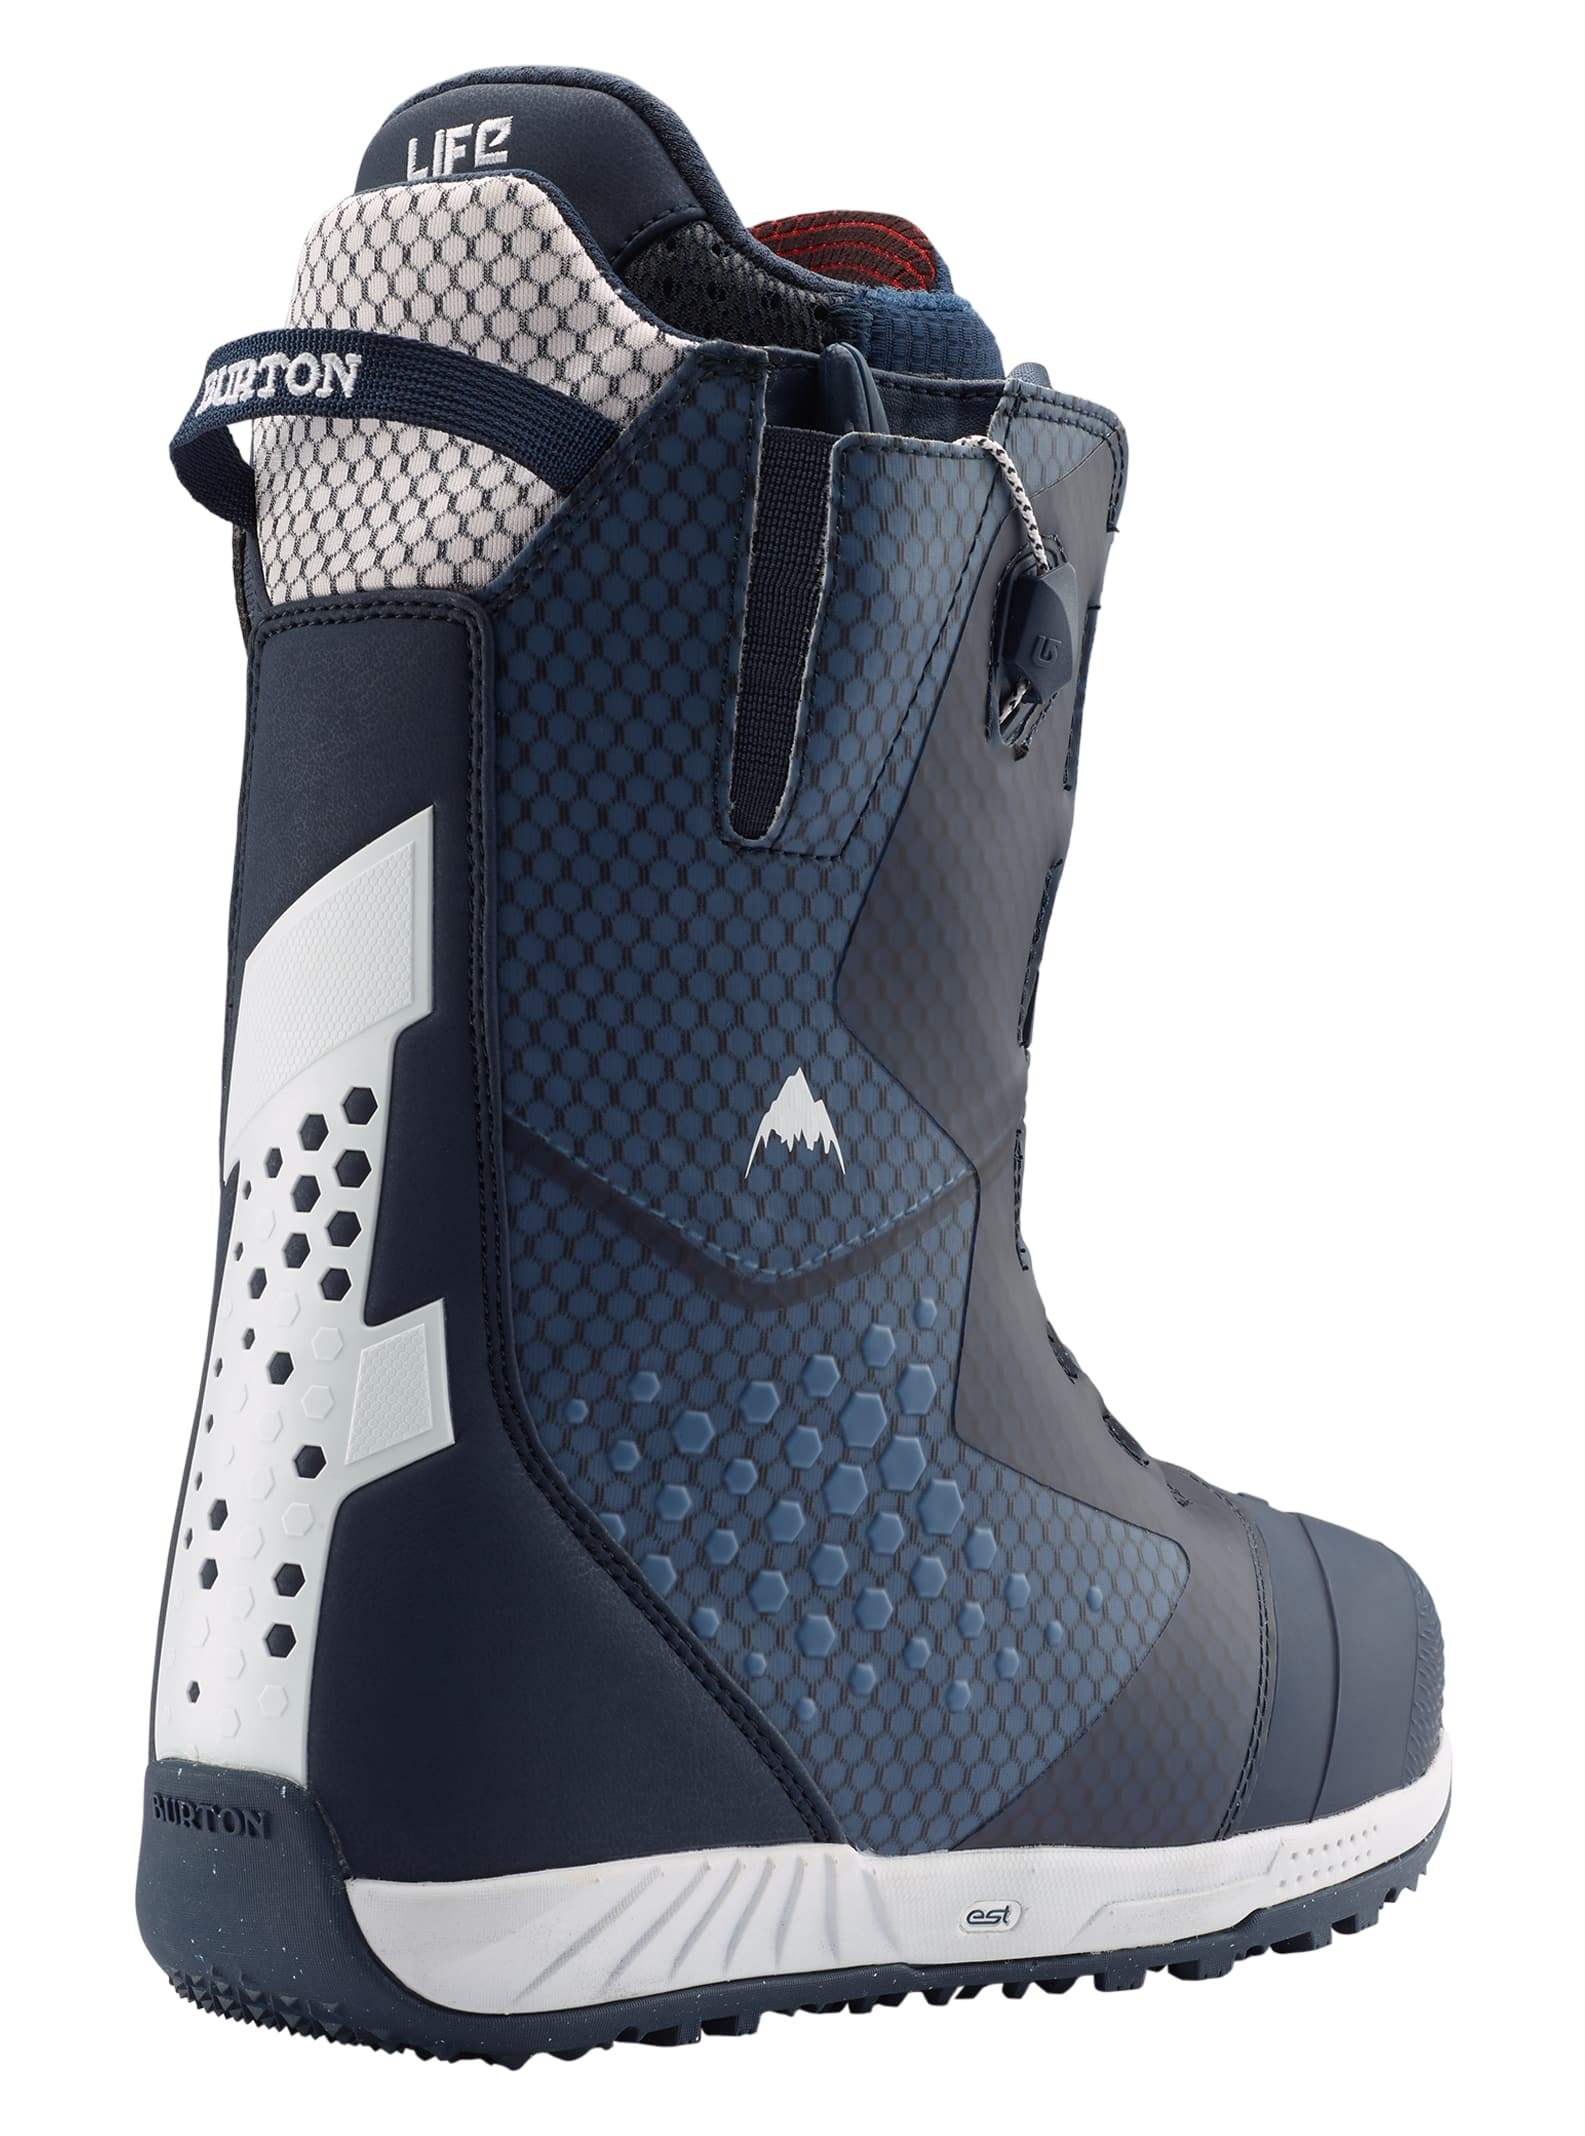 Burton Ion 2010 2018 Snowboard Boot Review